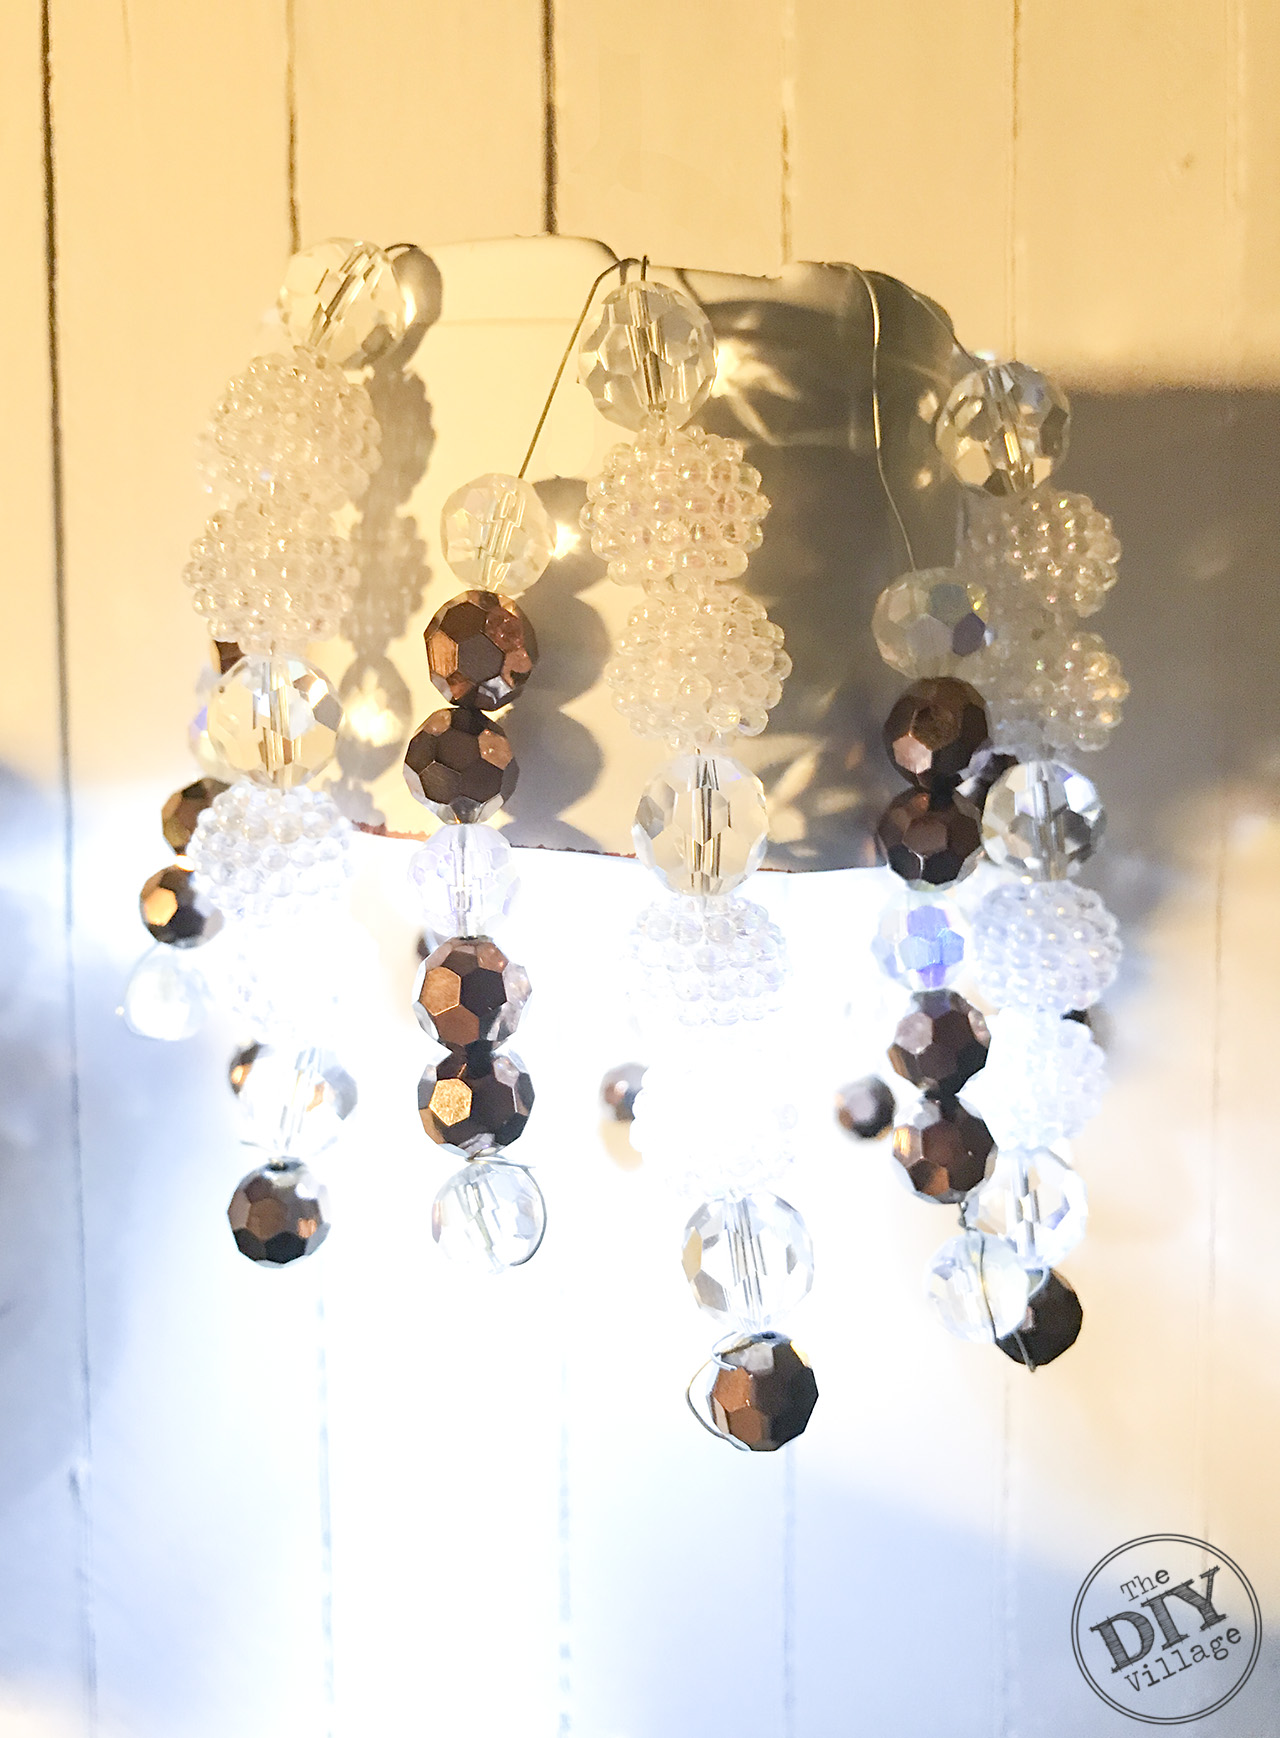 Diy locker chandelier for the crafty girl the diy village adhere the magnets to the top of the pot let them dry over night the next day your diy locker chandelier is ready to hang in your locker arubaitofo Image collections